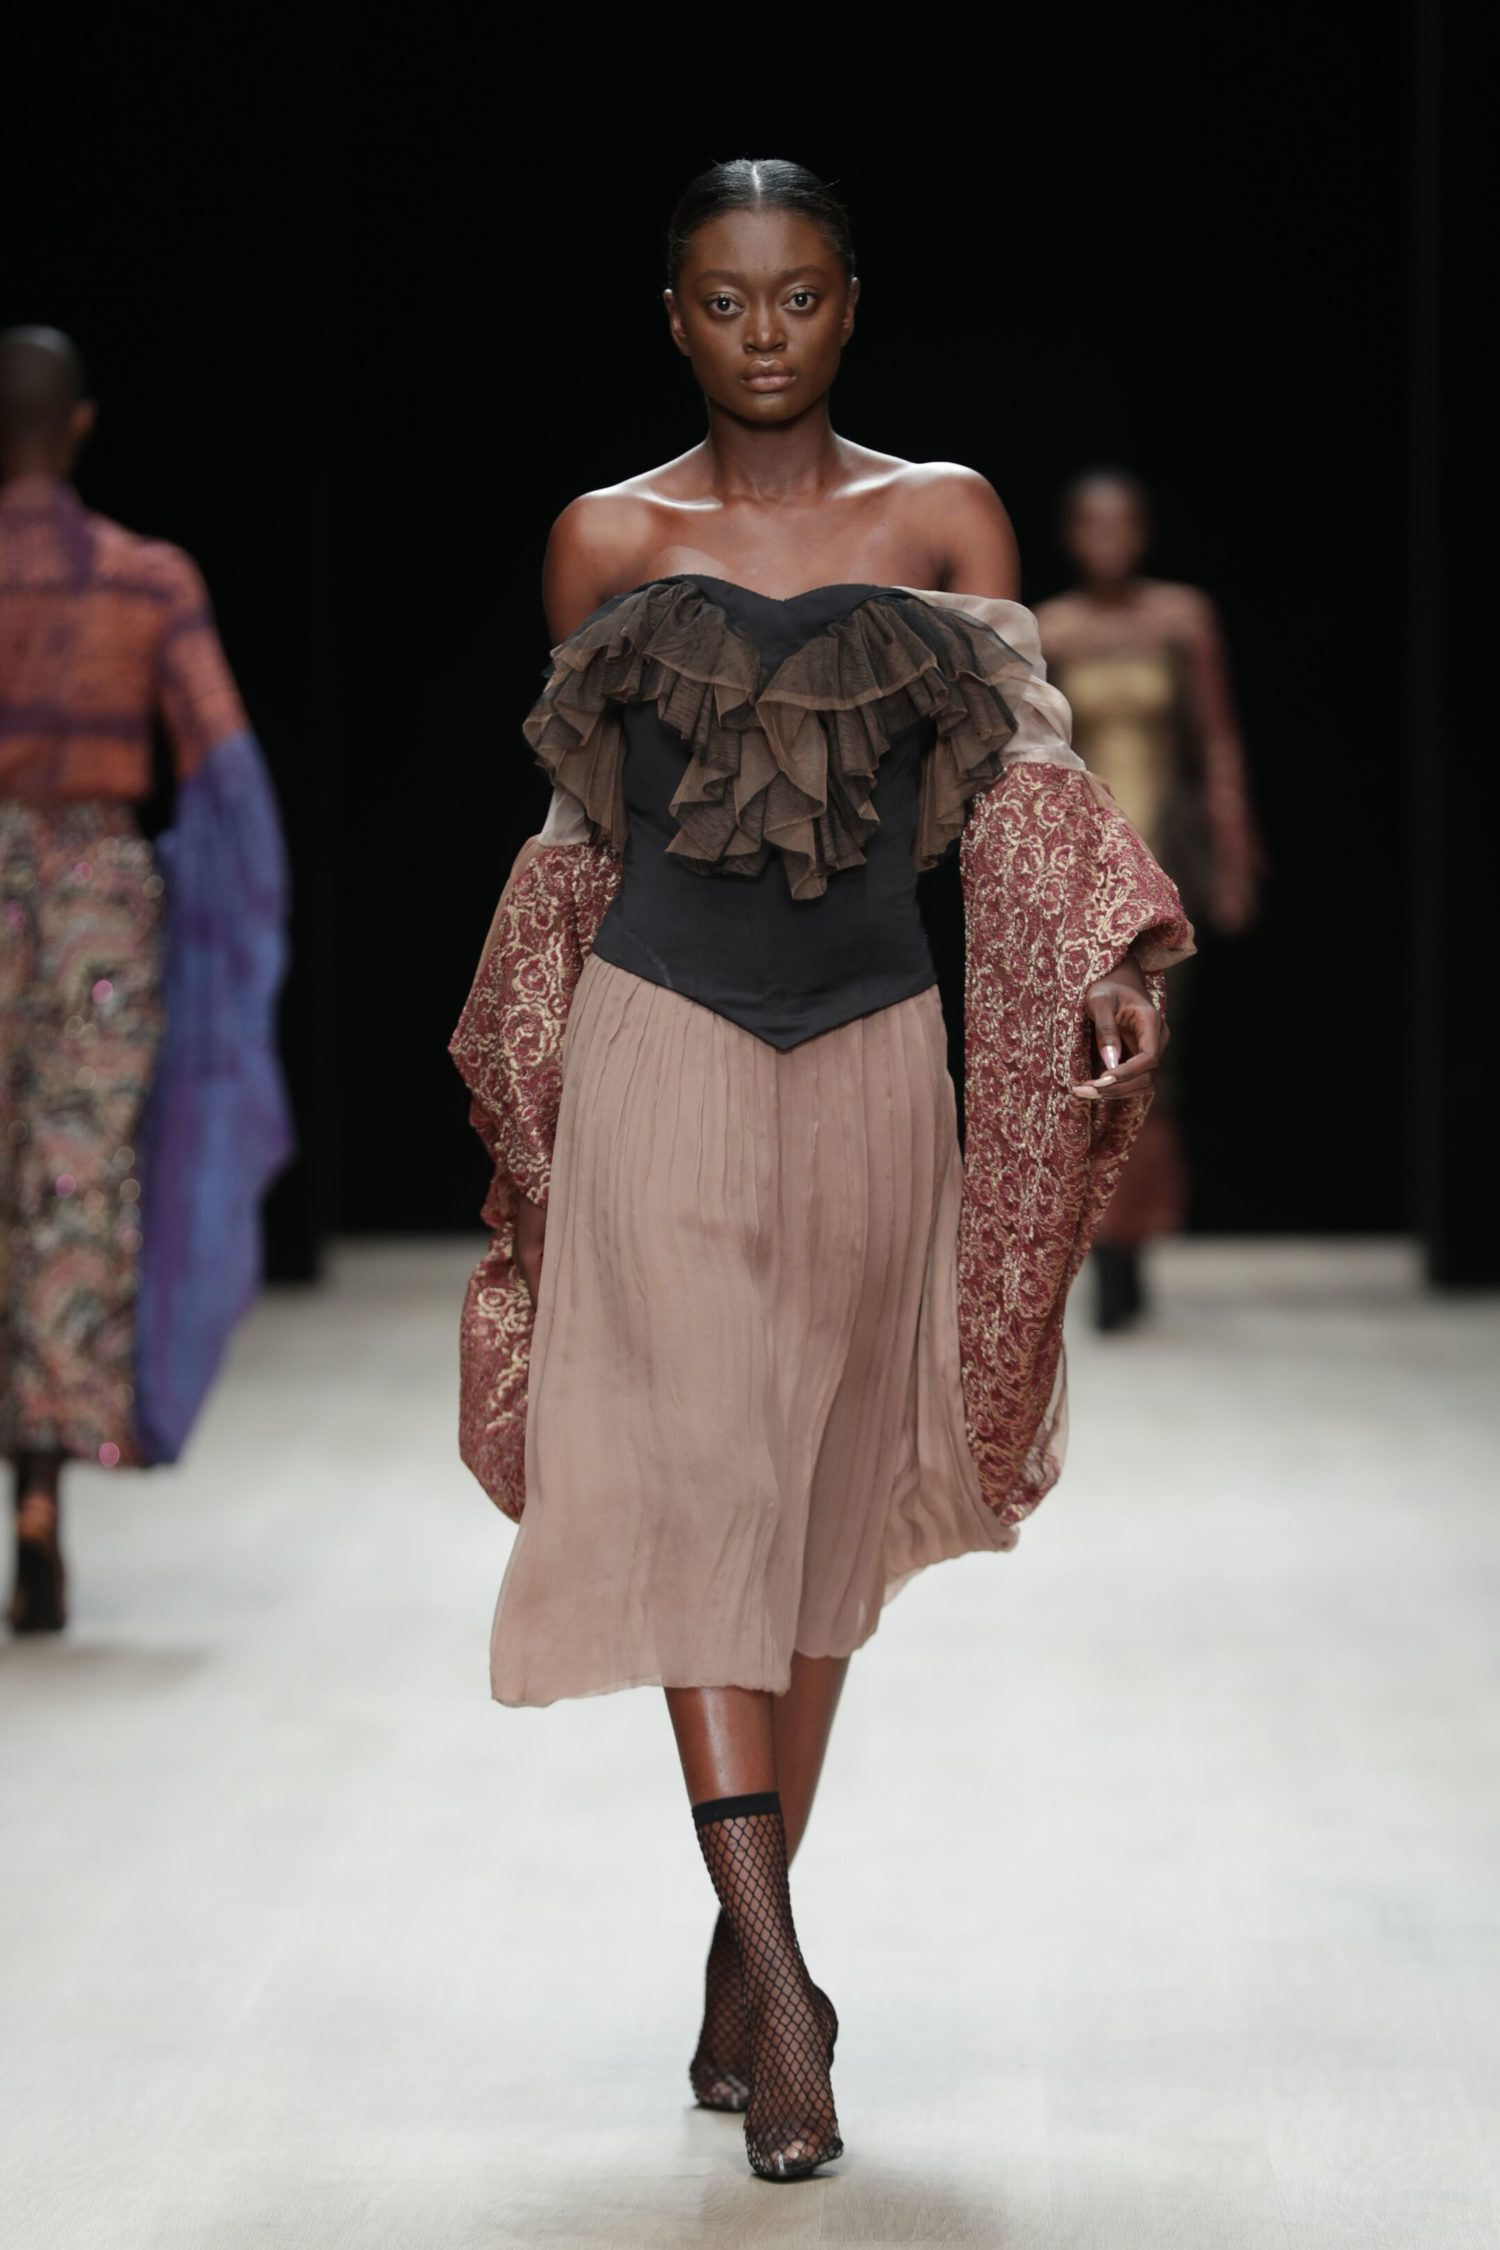 ARISE Fashion Week 2019 | Odio Mimonet